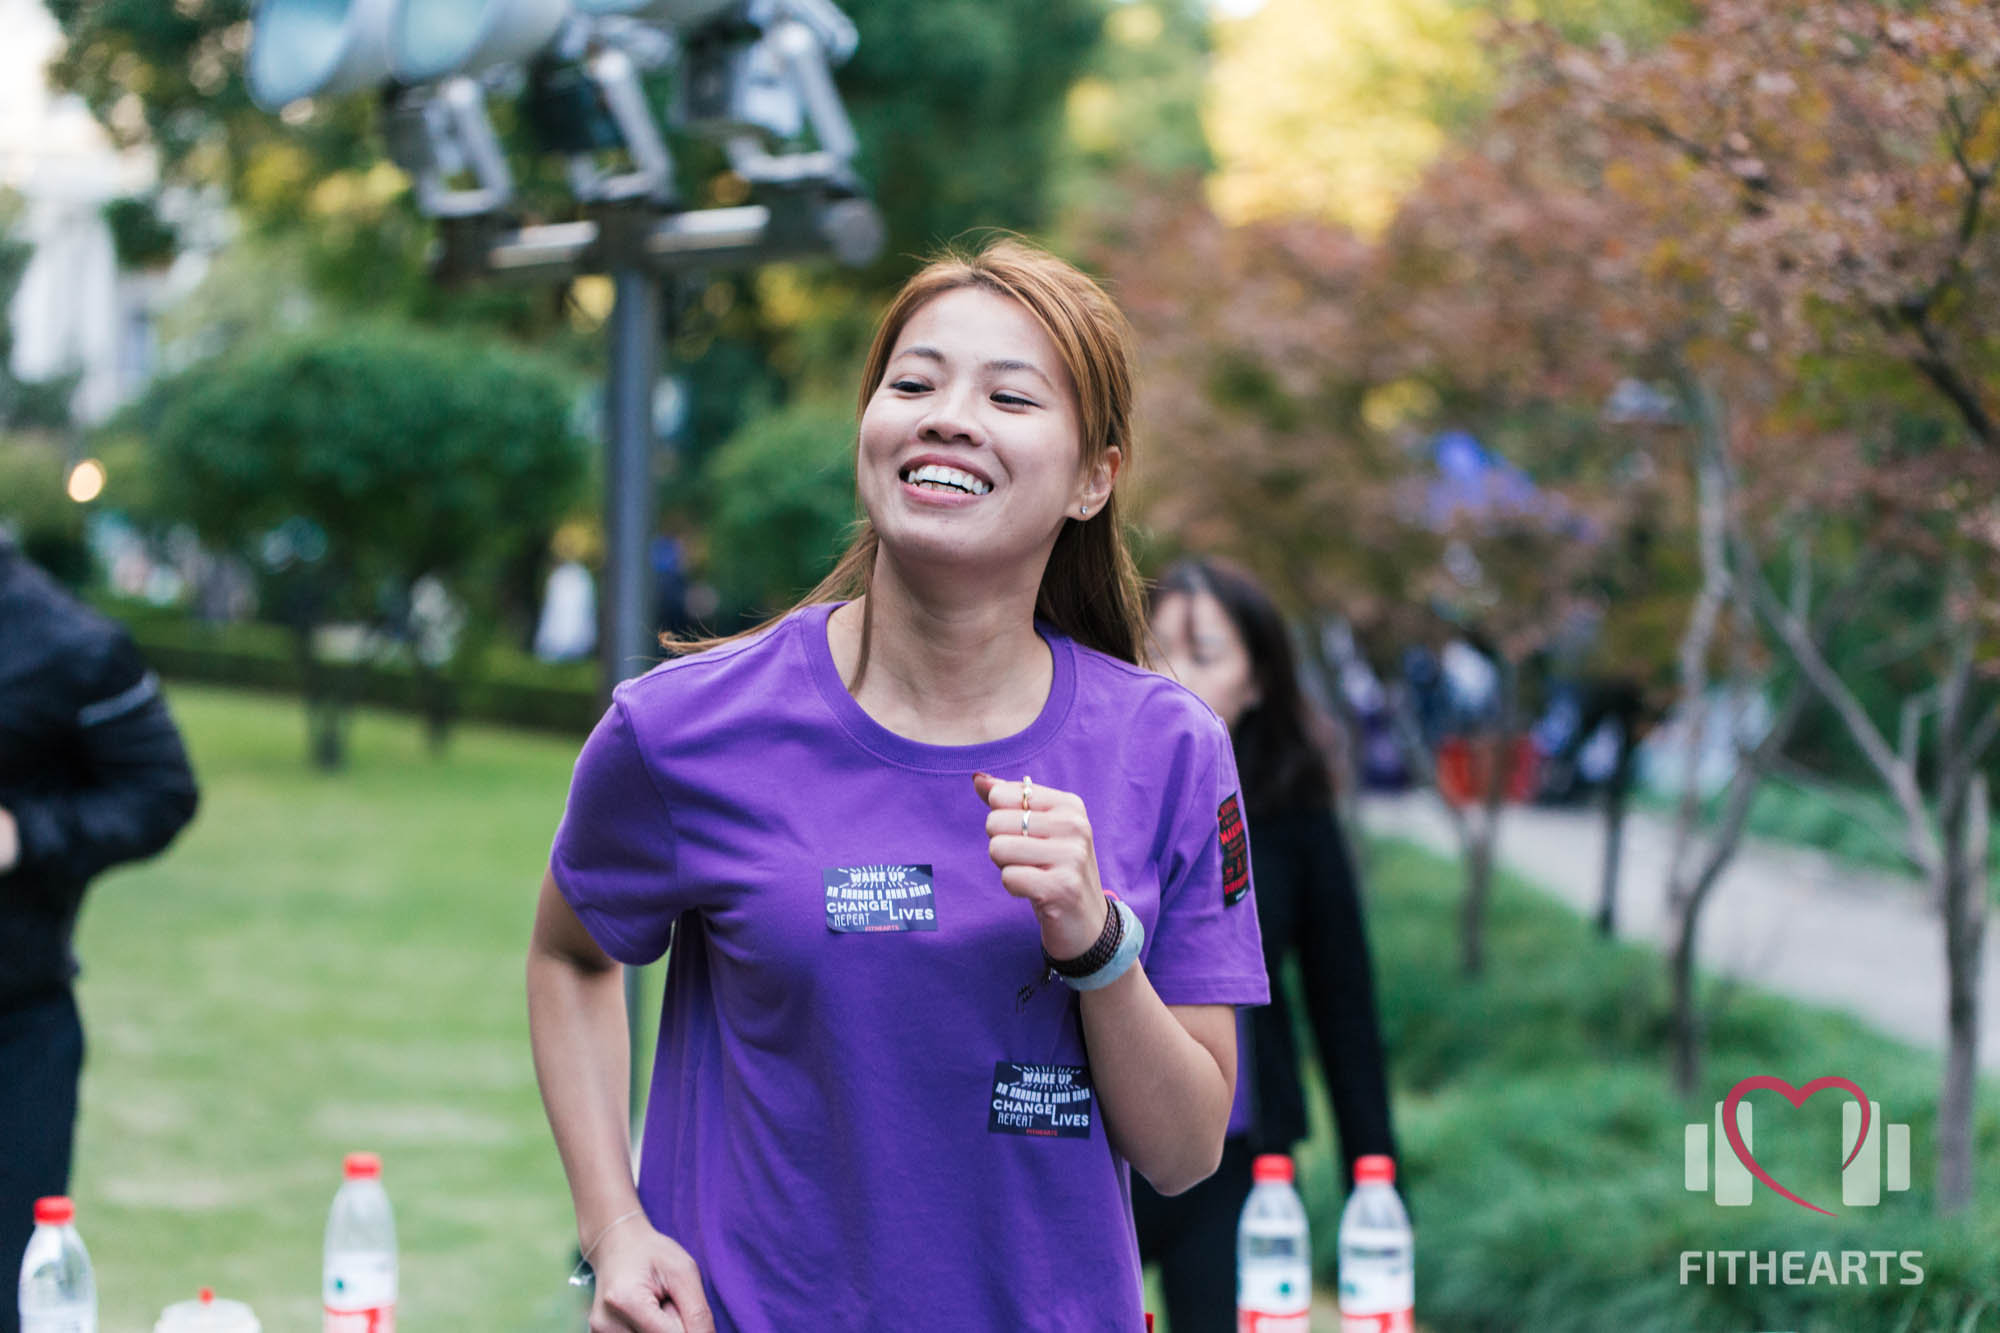 KIM CHEUNG, Operations  Chinese born, food lover, cooking chef by passion, sport and fitness enthusiasts, you will always find on her face a big smile with dimples.